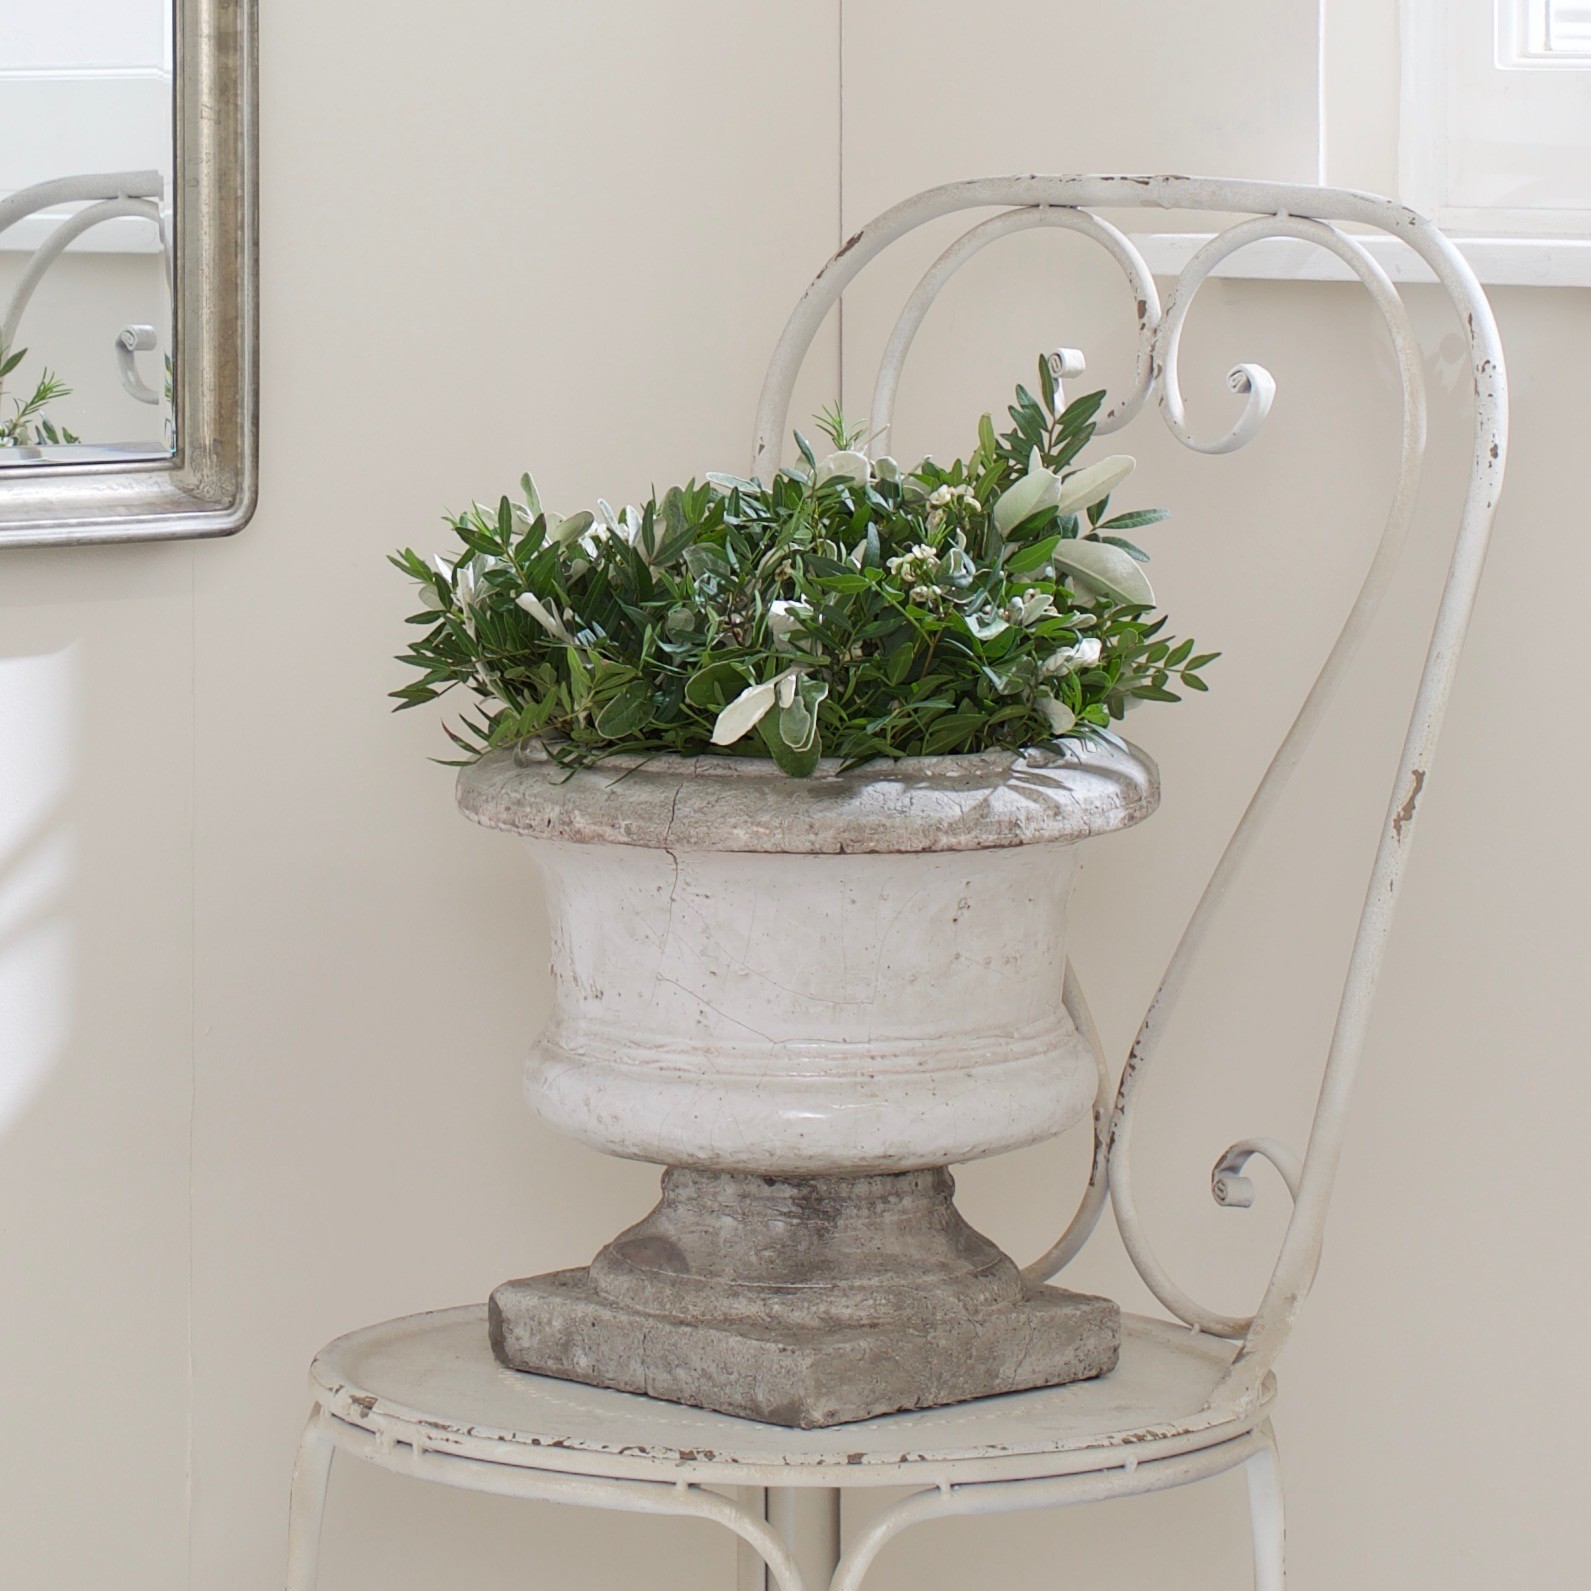 Materials Distressed And Glazed: Small Distressed Ceramic Planter Furniture